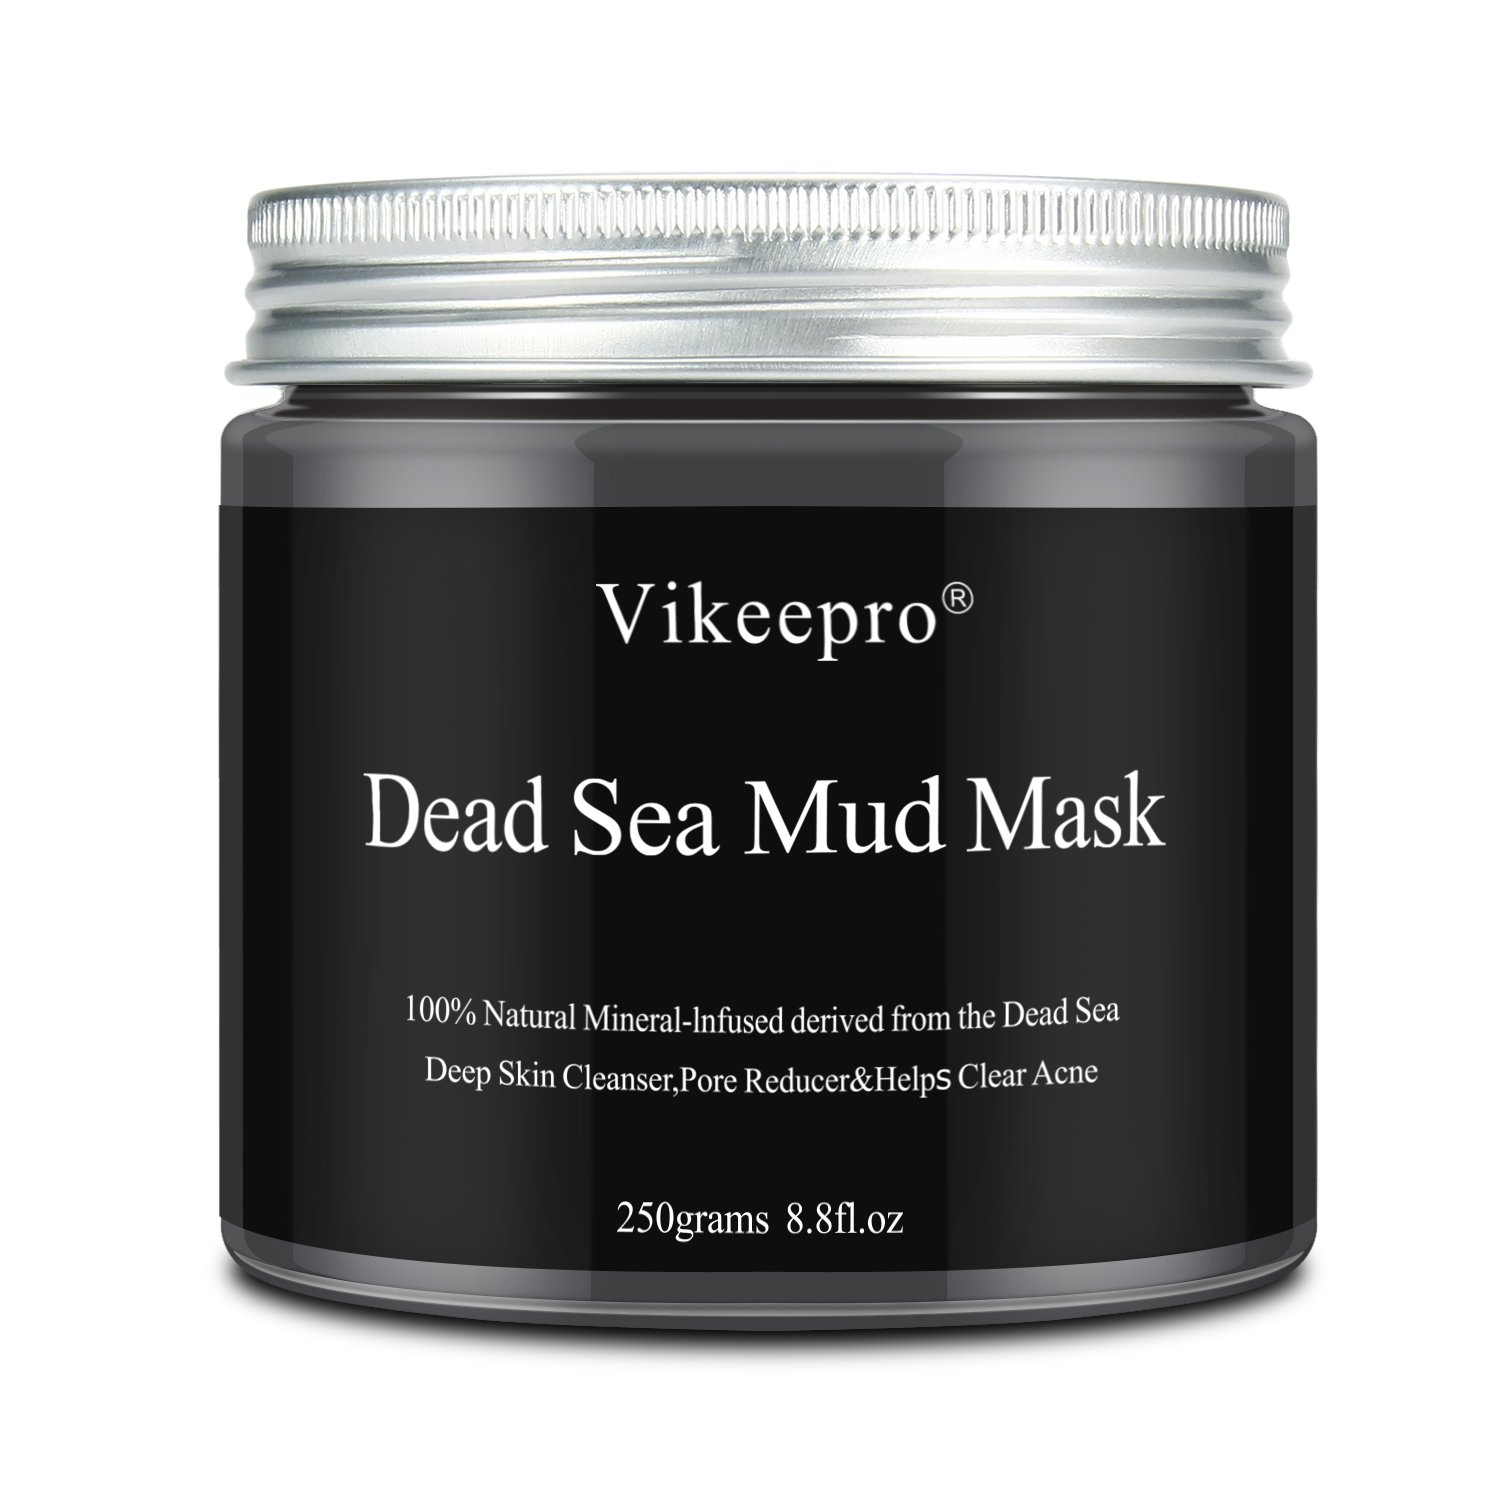 Vikeepro Dead Sea Mud Mask Face Mask Deep Cleansing Exfoliation Minimizes Pores Reduces Acne Wrinkles Blackhead Remover Anti Oily Skin For Face And Body